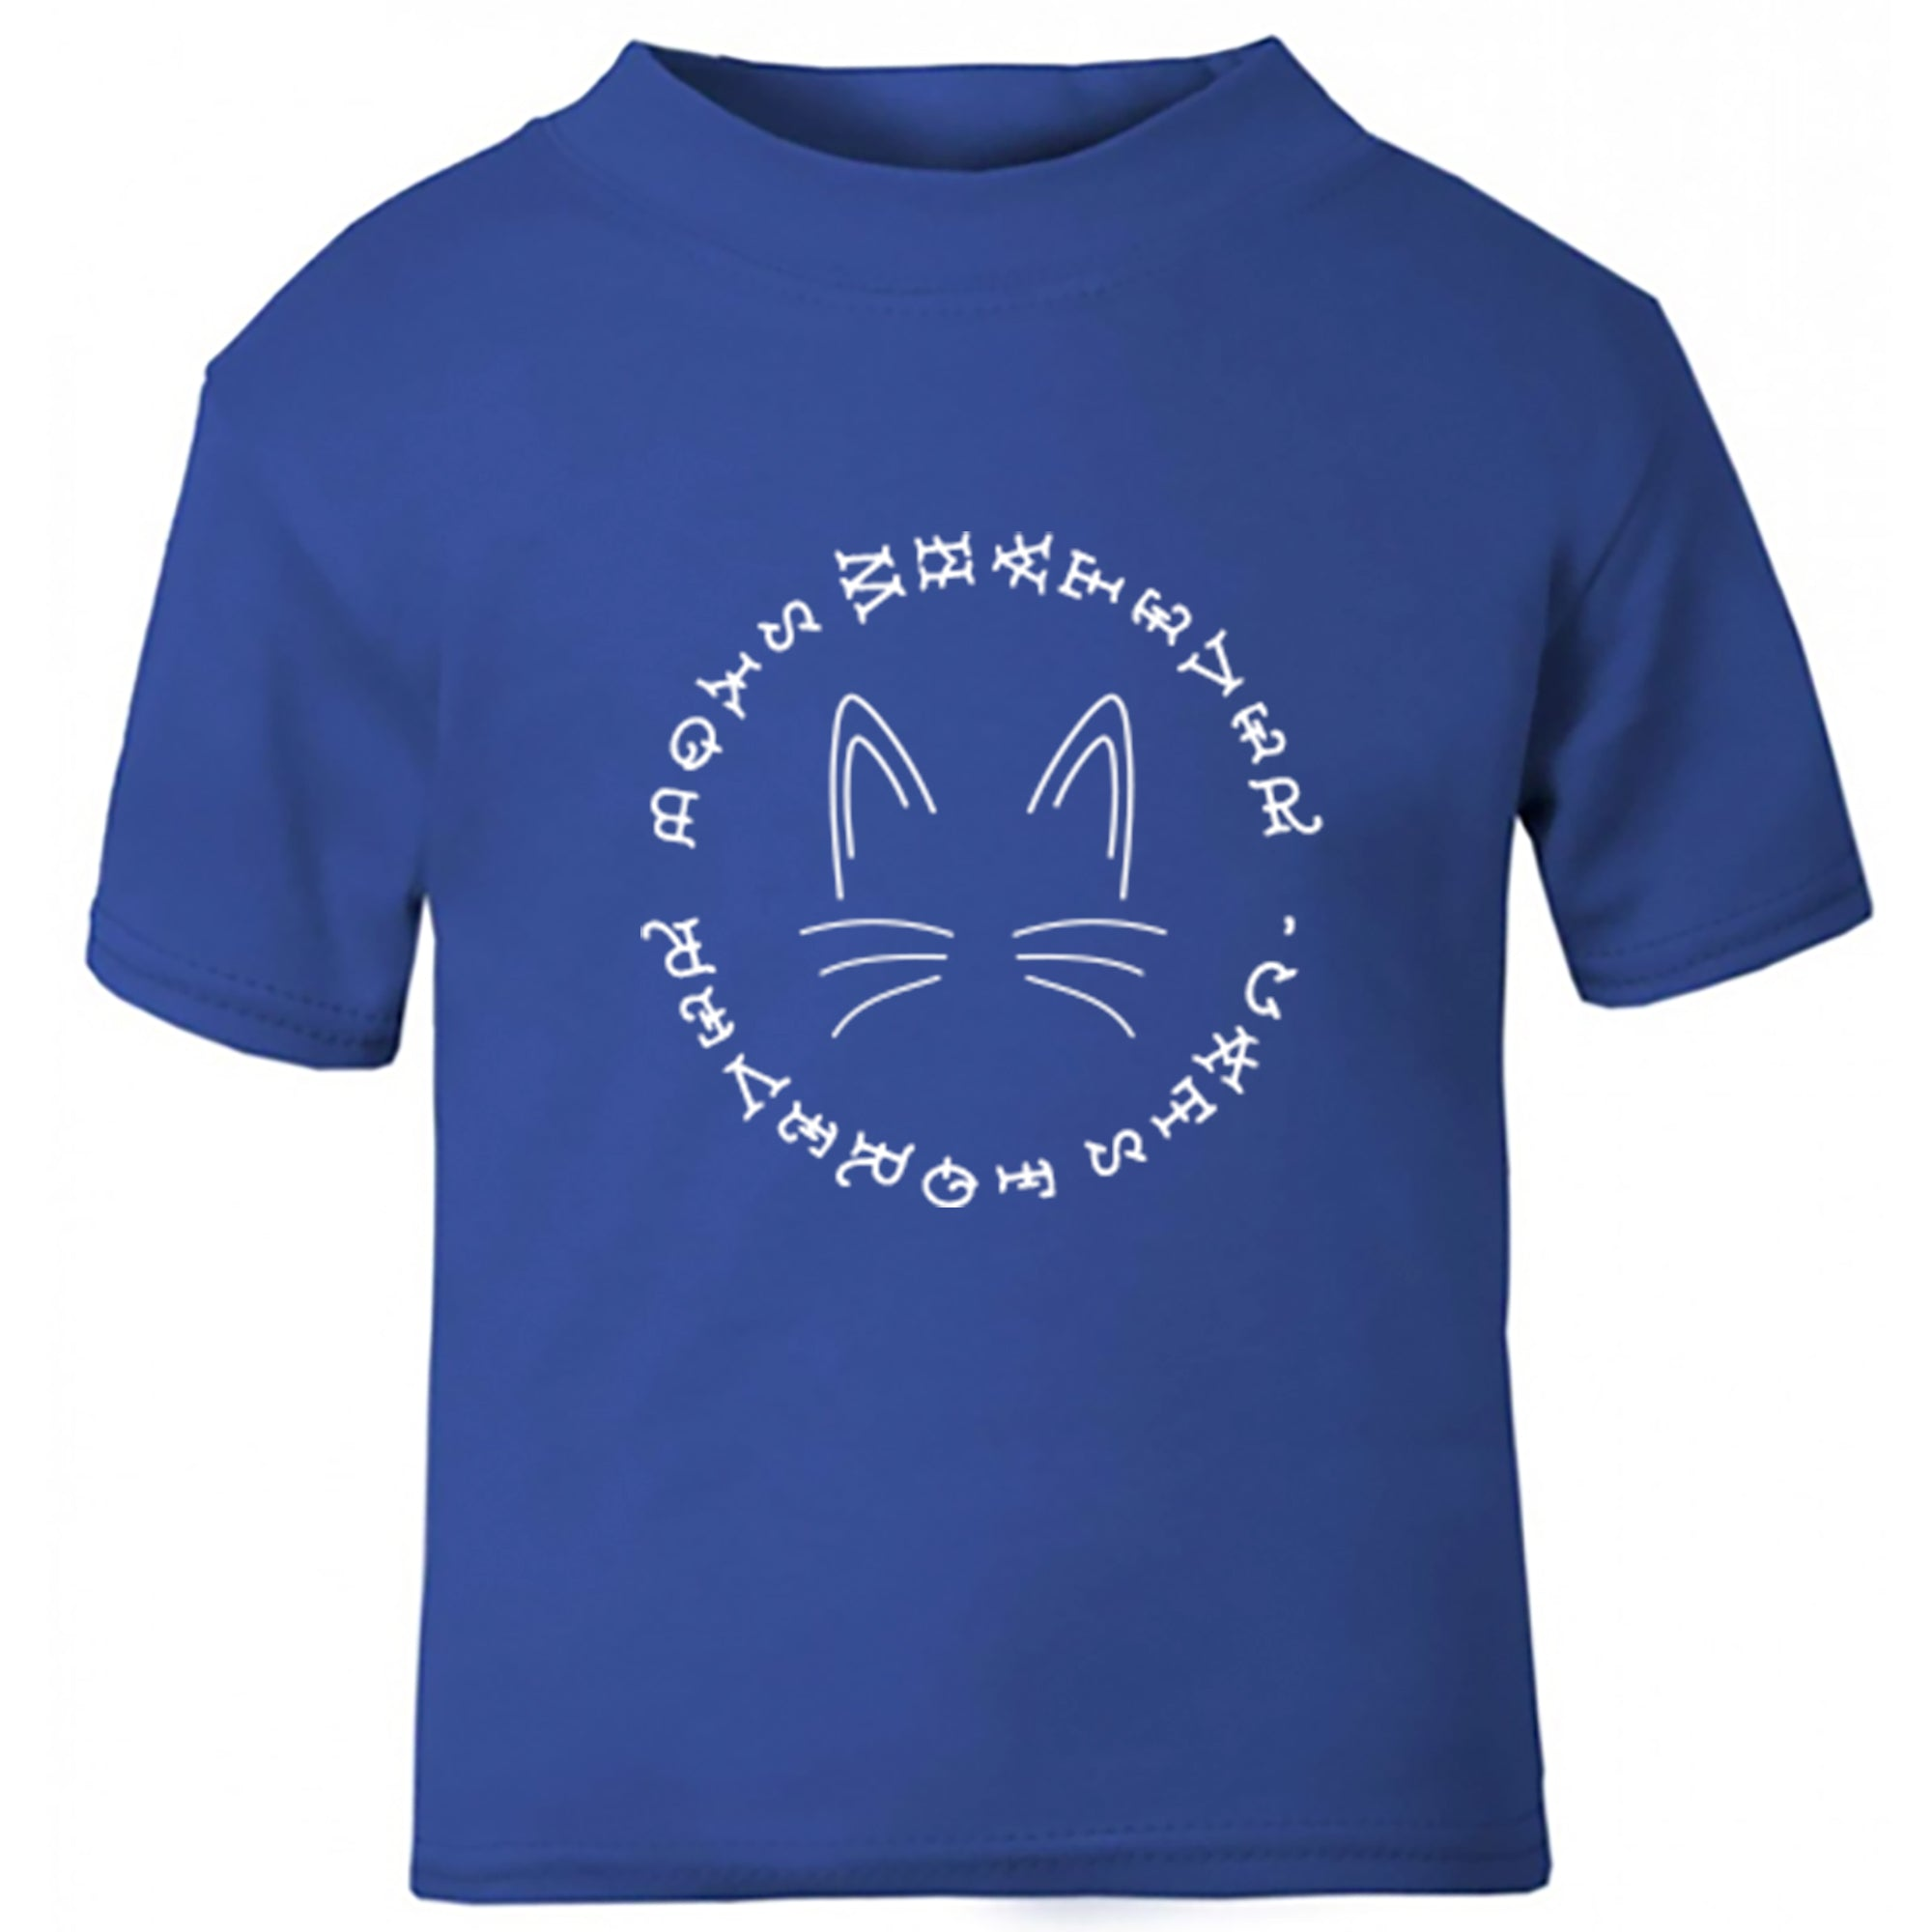 Cats Forever Boys Whatever Childrens Ages 3/4-12/14 Unisex Fit T-Shirt S0014 - Illustrated Identity Ltd.